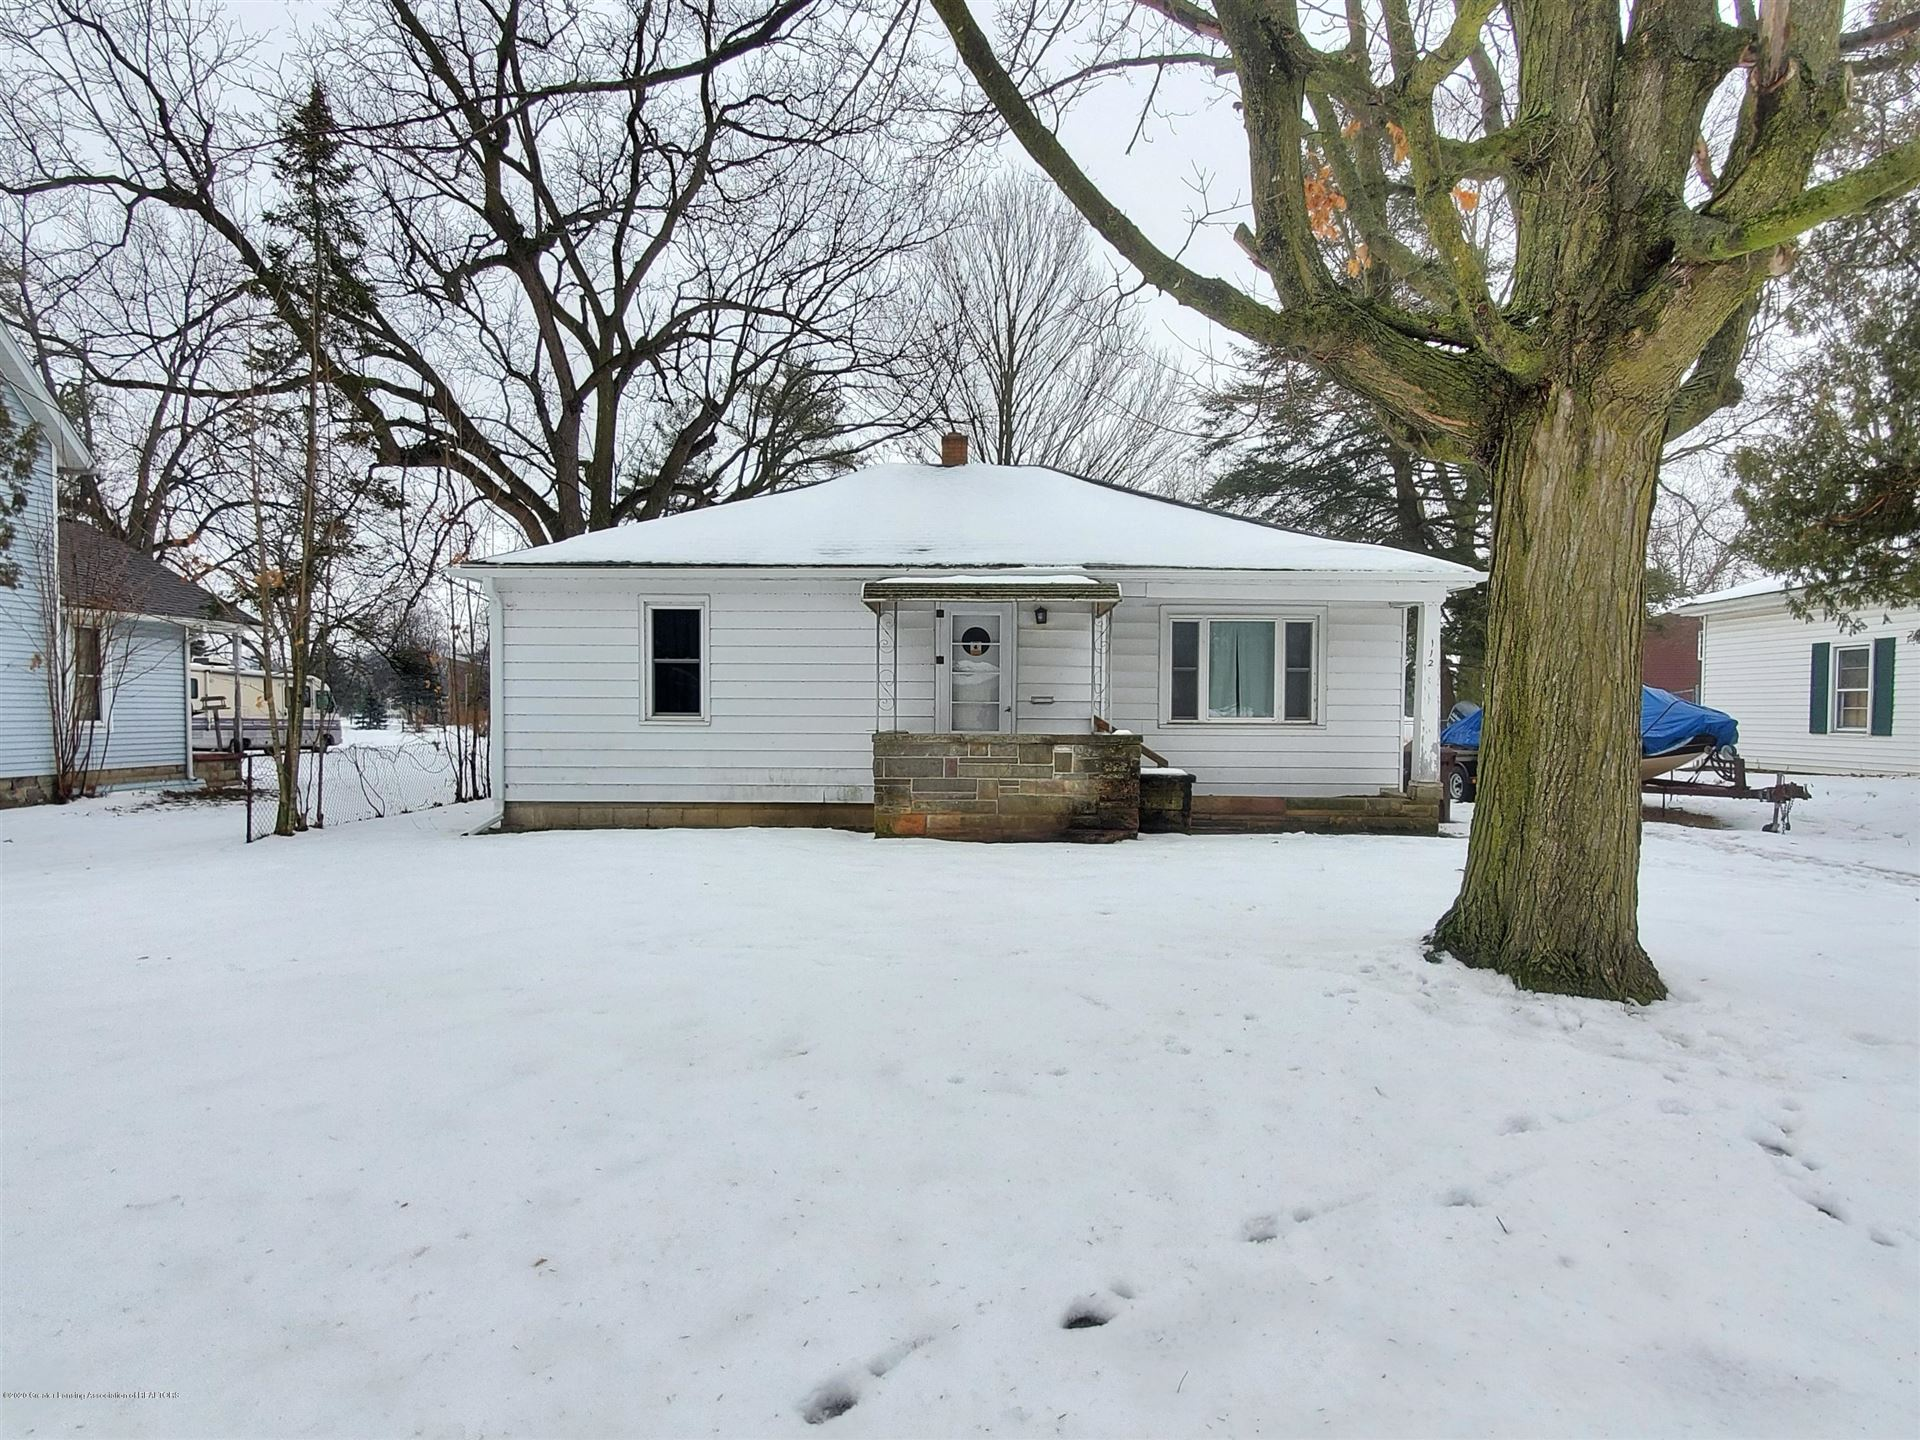 Photo of 112 N Center, Eaton Rapids, MI 48827 (MLS # 243782)